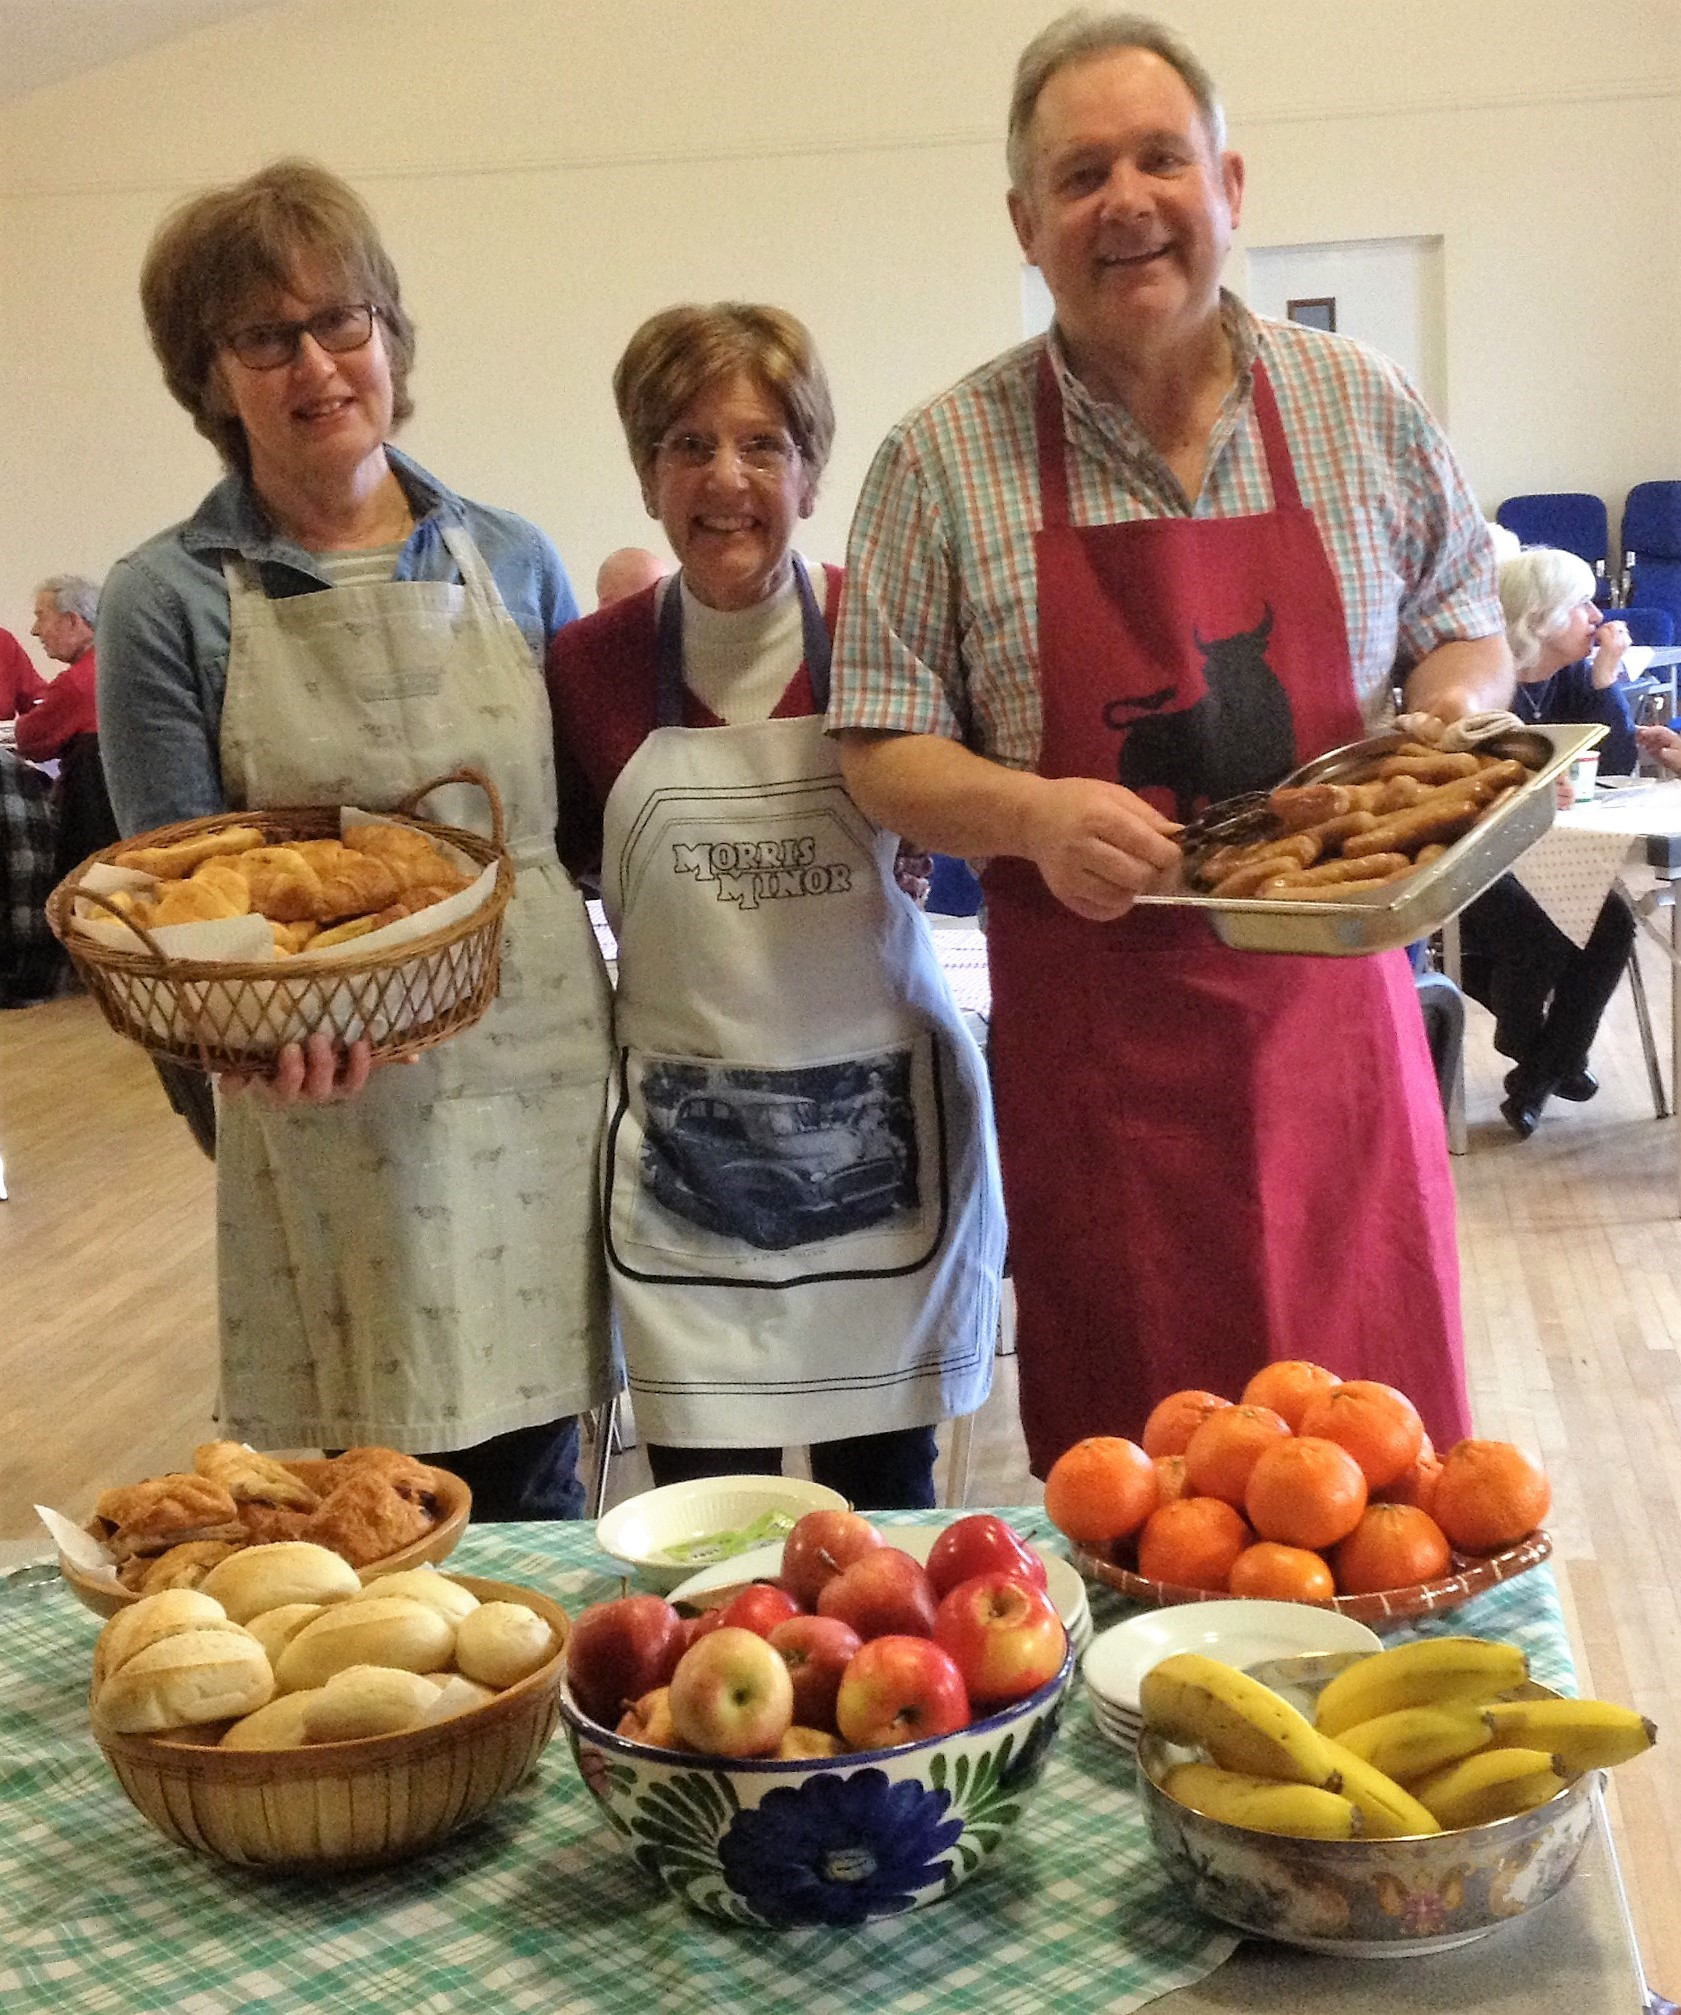 Pam Jarvie, Drene Baker, from the Wyre Forest fundraising committee, and Trefor Cook at last year's Big Breakfast